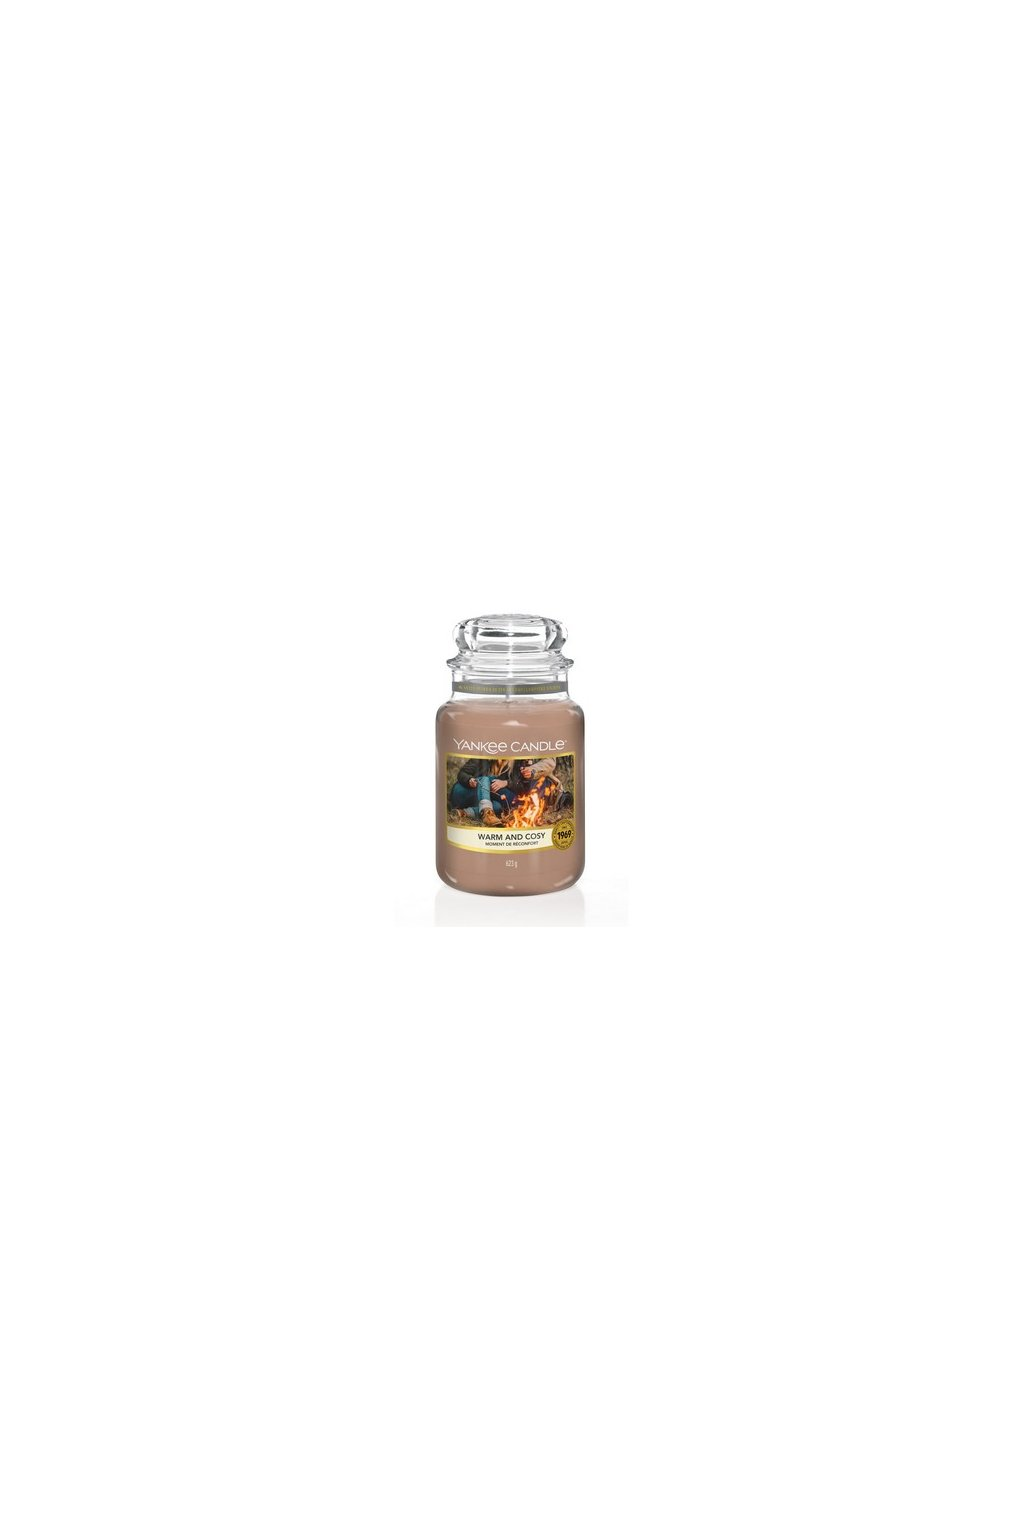 YANKEE CANDLE WARM & COSY 623g